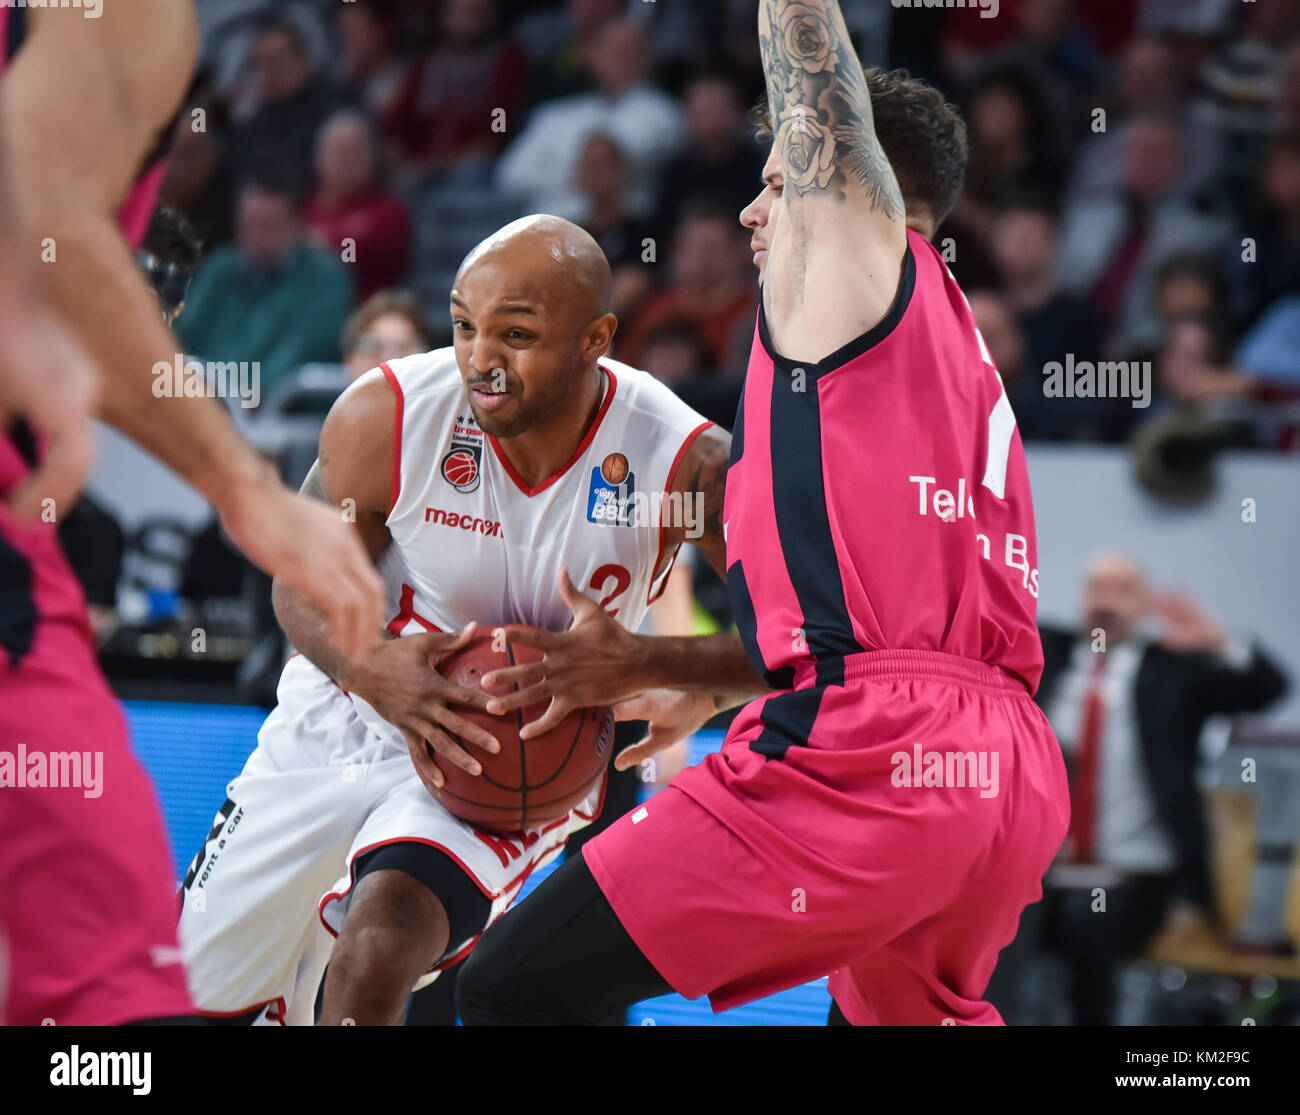 Germany, Bamberg, Brose Arena, 03 December 2017 - (From L-R): Ricky Hickman (Brose Bamberg, #2) making a drive to - Stock Image